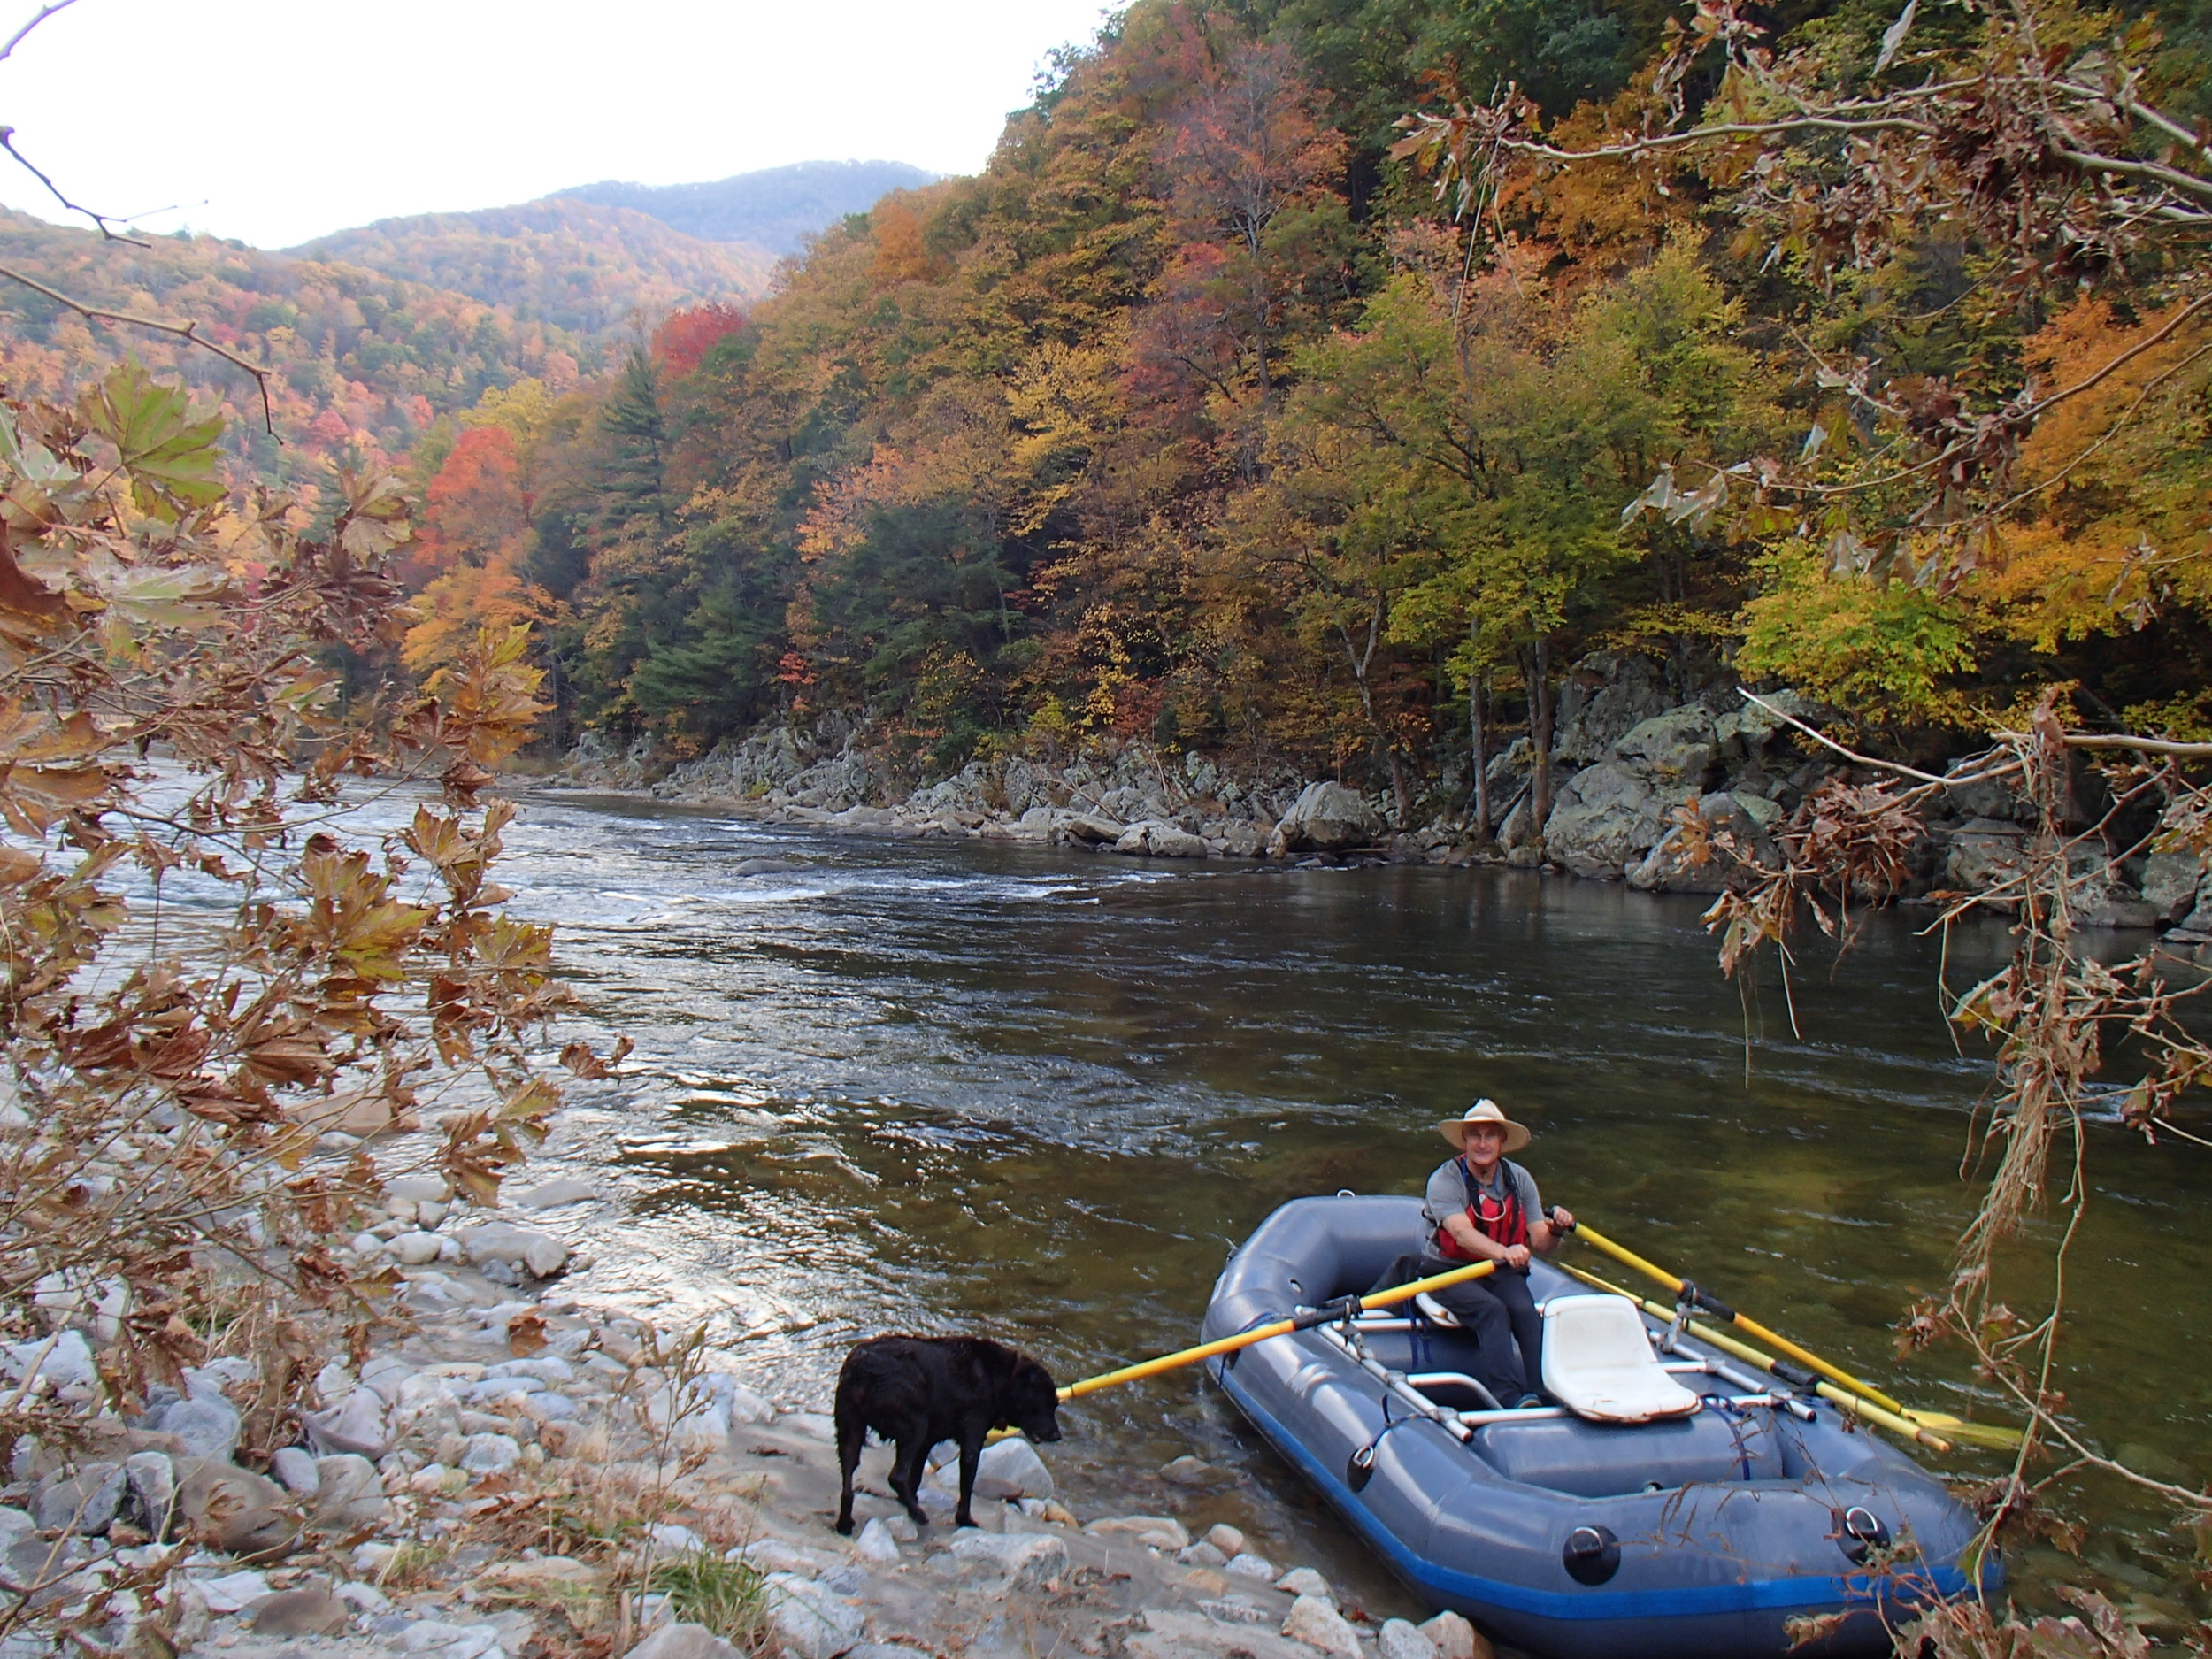 Whitewater Rafting on the Nolichucky River